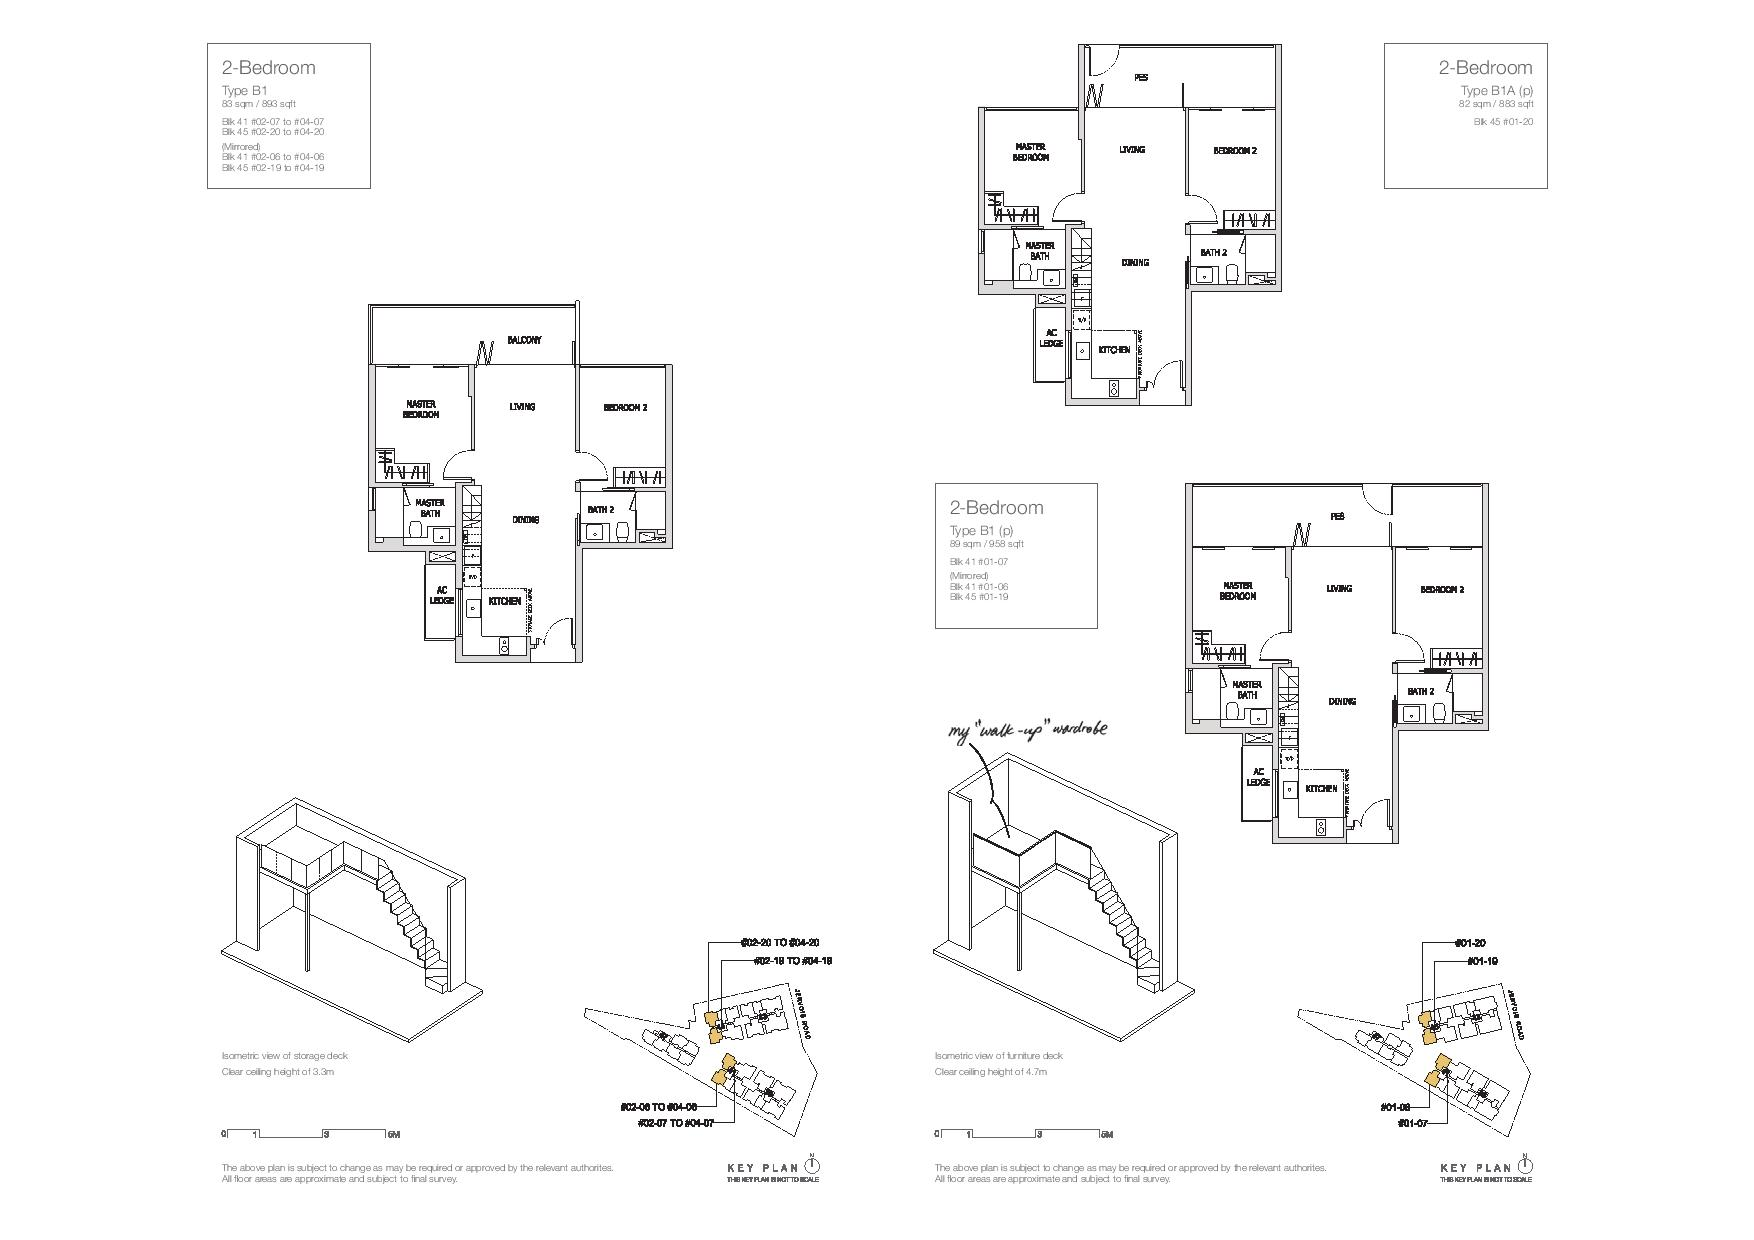 Mon Jervois 2 Bedroom Floor Plans Type B1, B1A(p), B1(p)